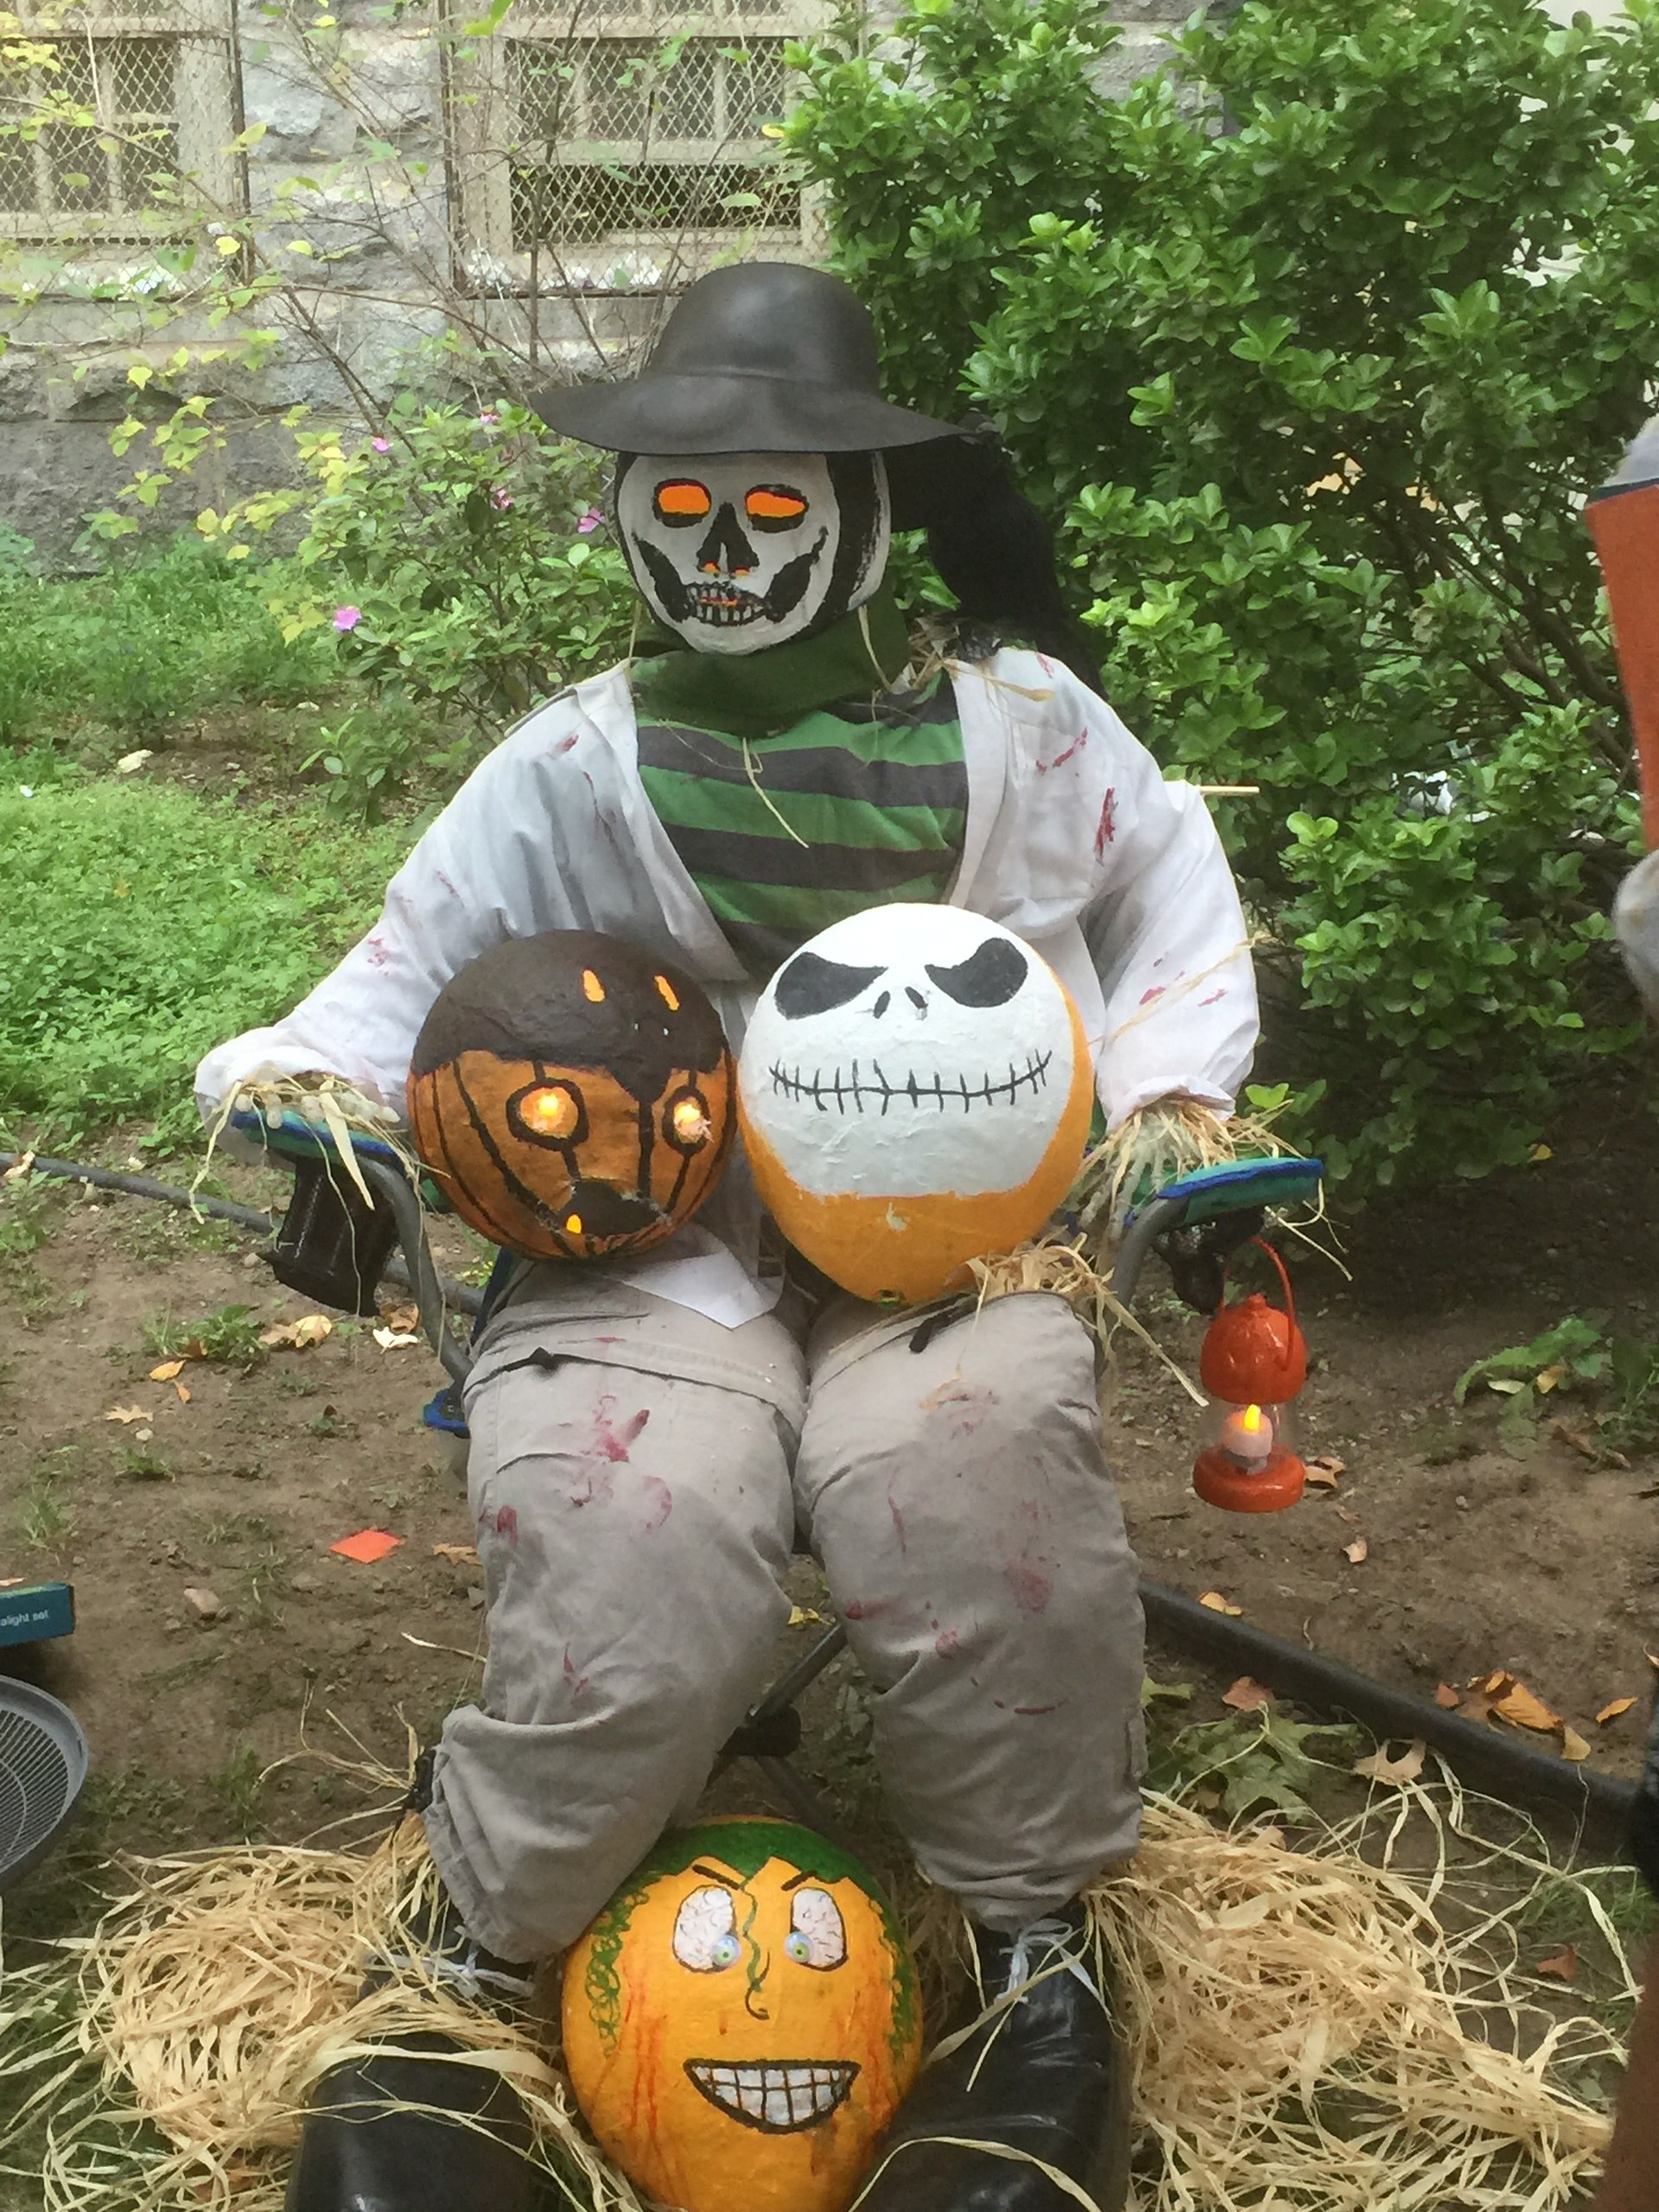 Seated scarecrow holding lantern and pumpkins.